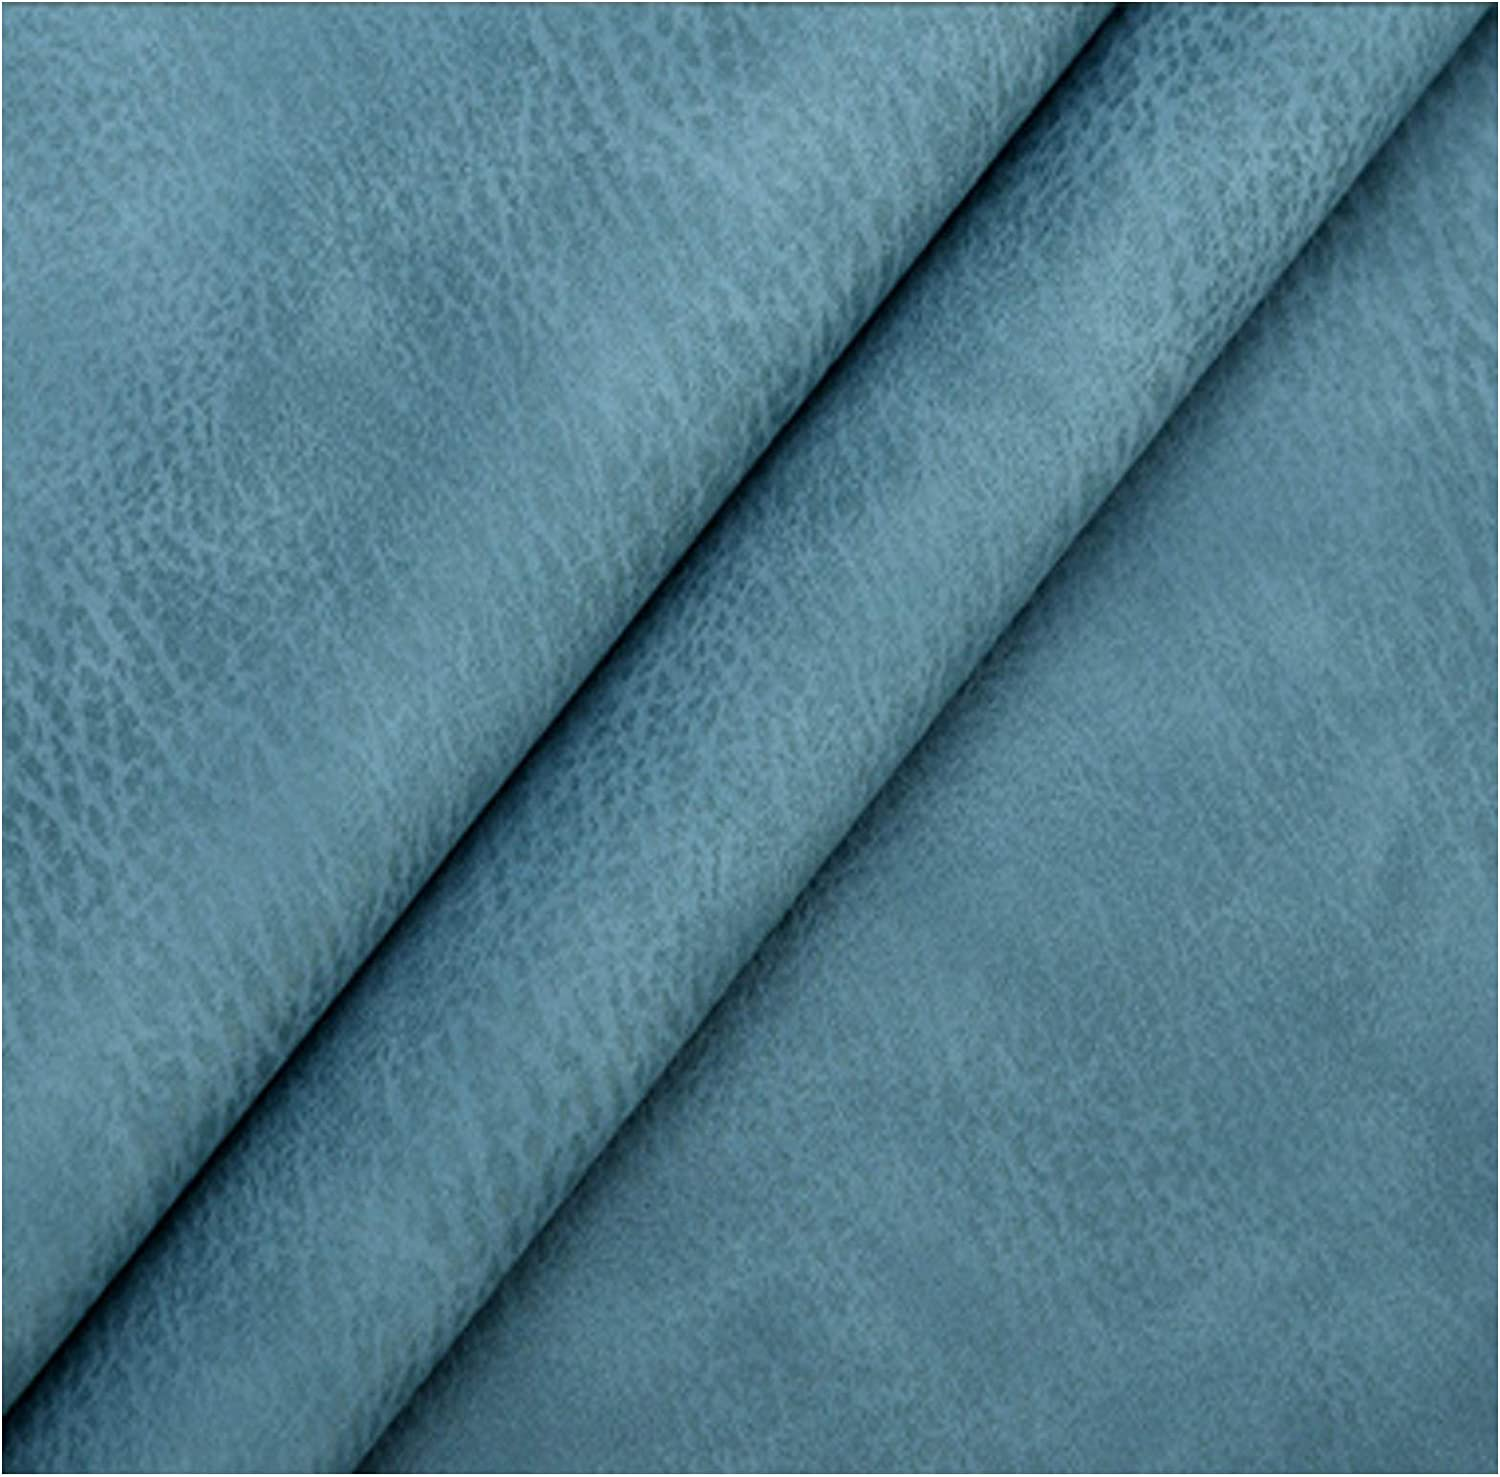 Grained Faux Leather Fabric 1.2mm Thick Lowest Direct store price challenge Leatherette Leathe Vinyl